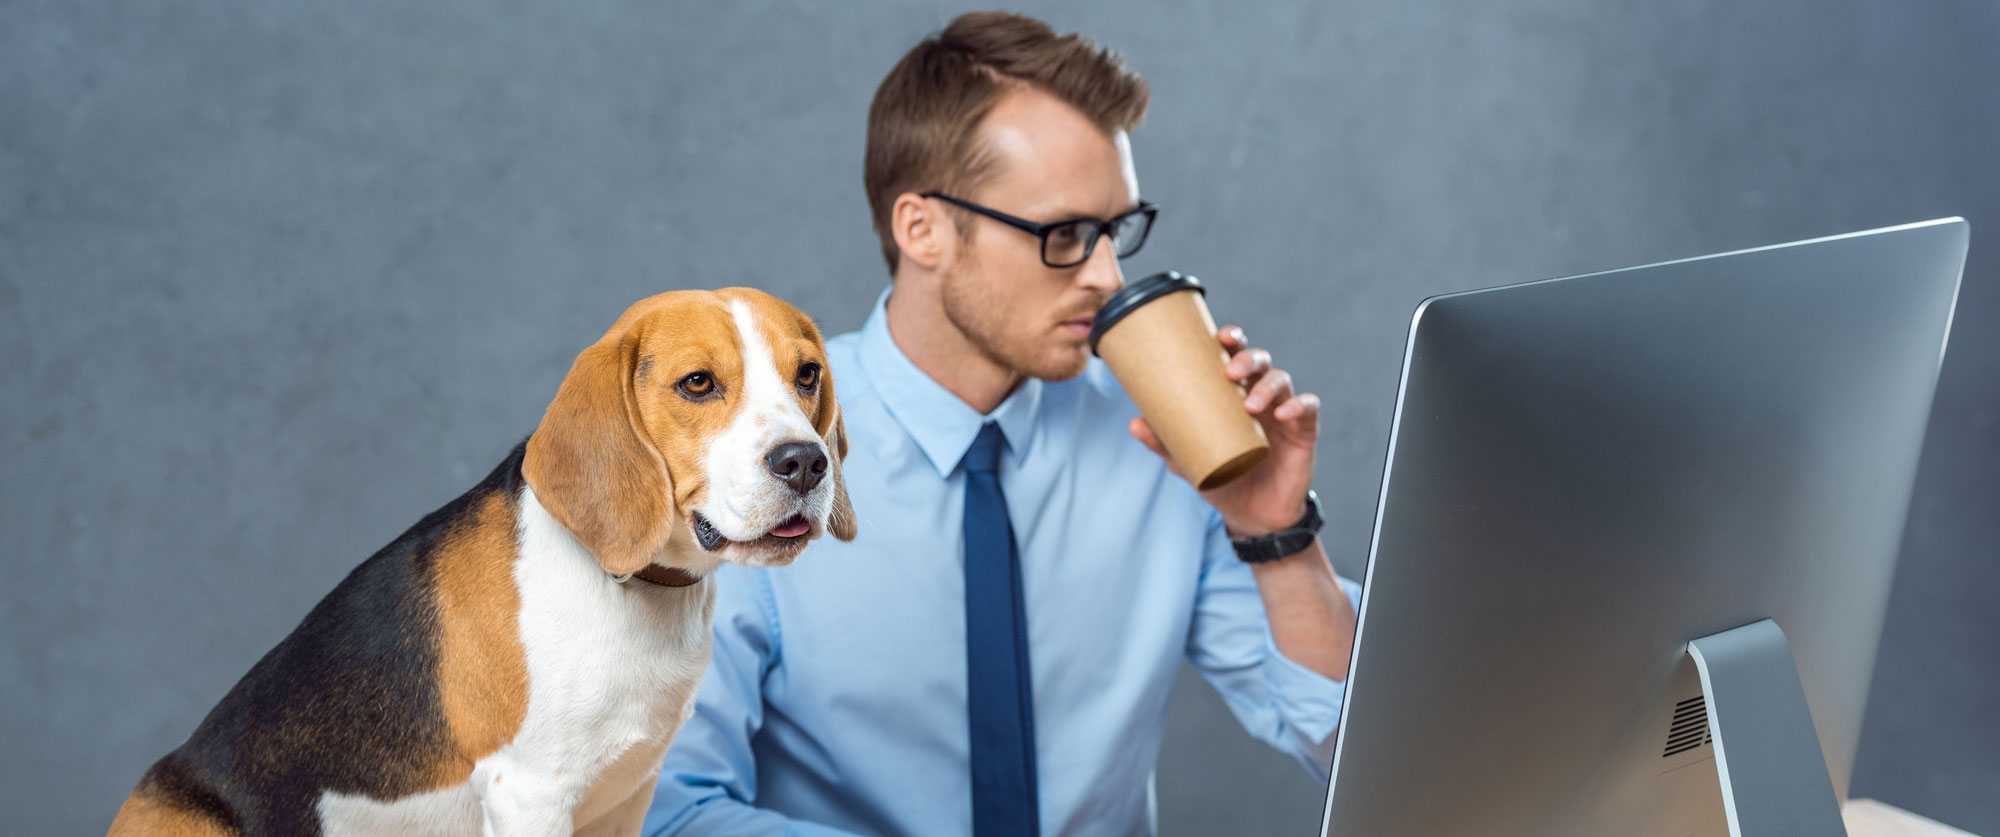 An individual in a blue collared shirt and tie drinks coffee while working on a computer at a desk, with a small puppy sitting on the desk next to them.